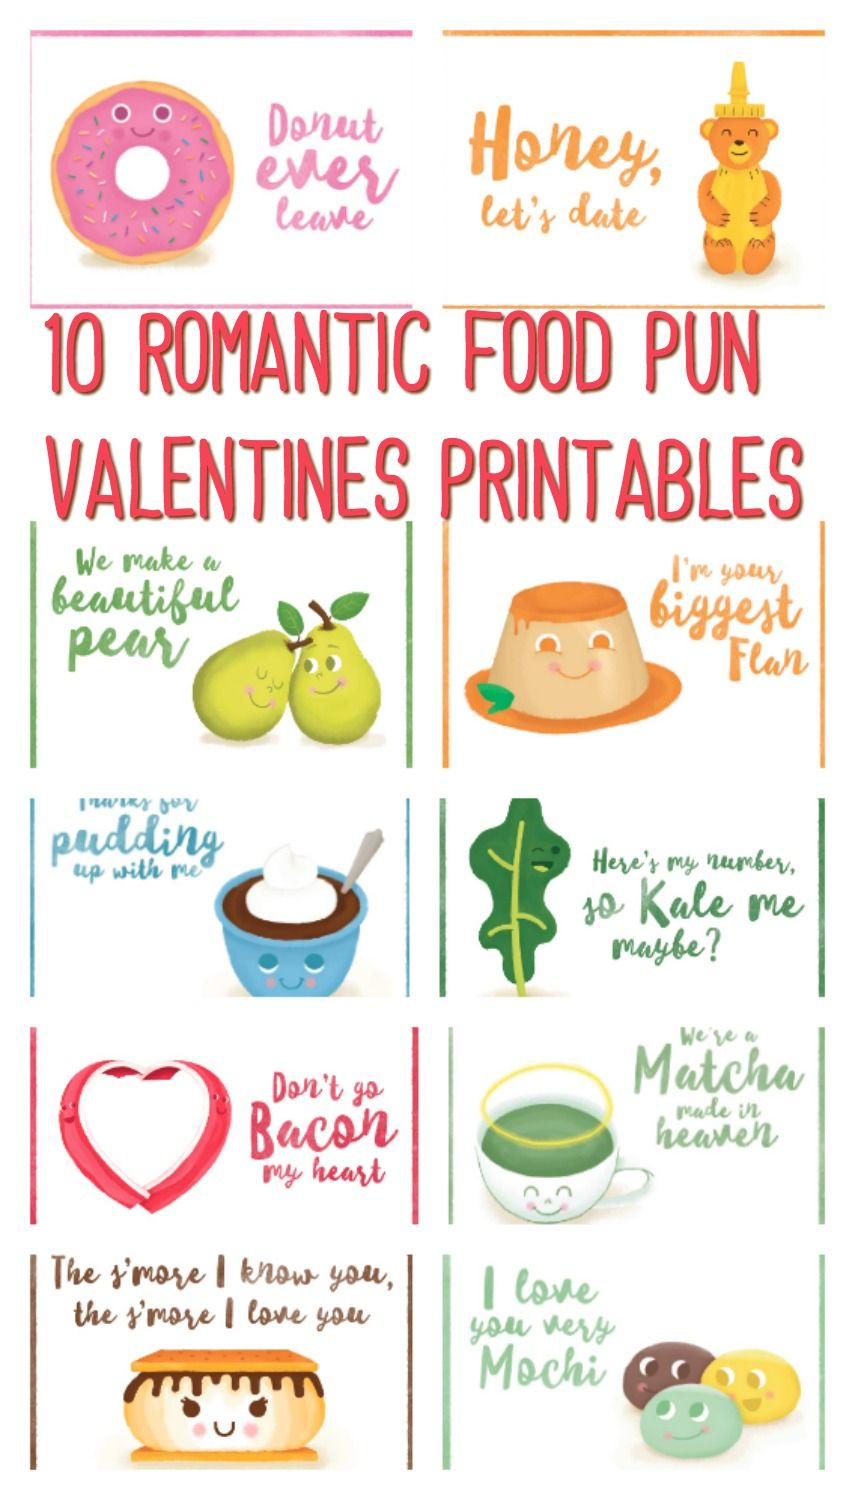 10 Romantic Food Pun Valentines Printables A Sparkle Of